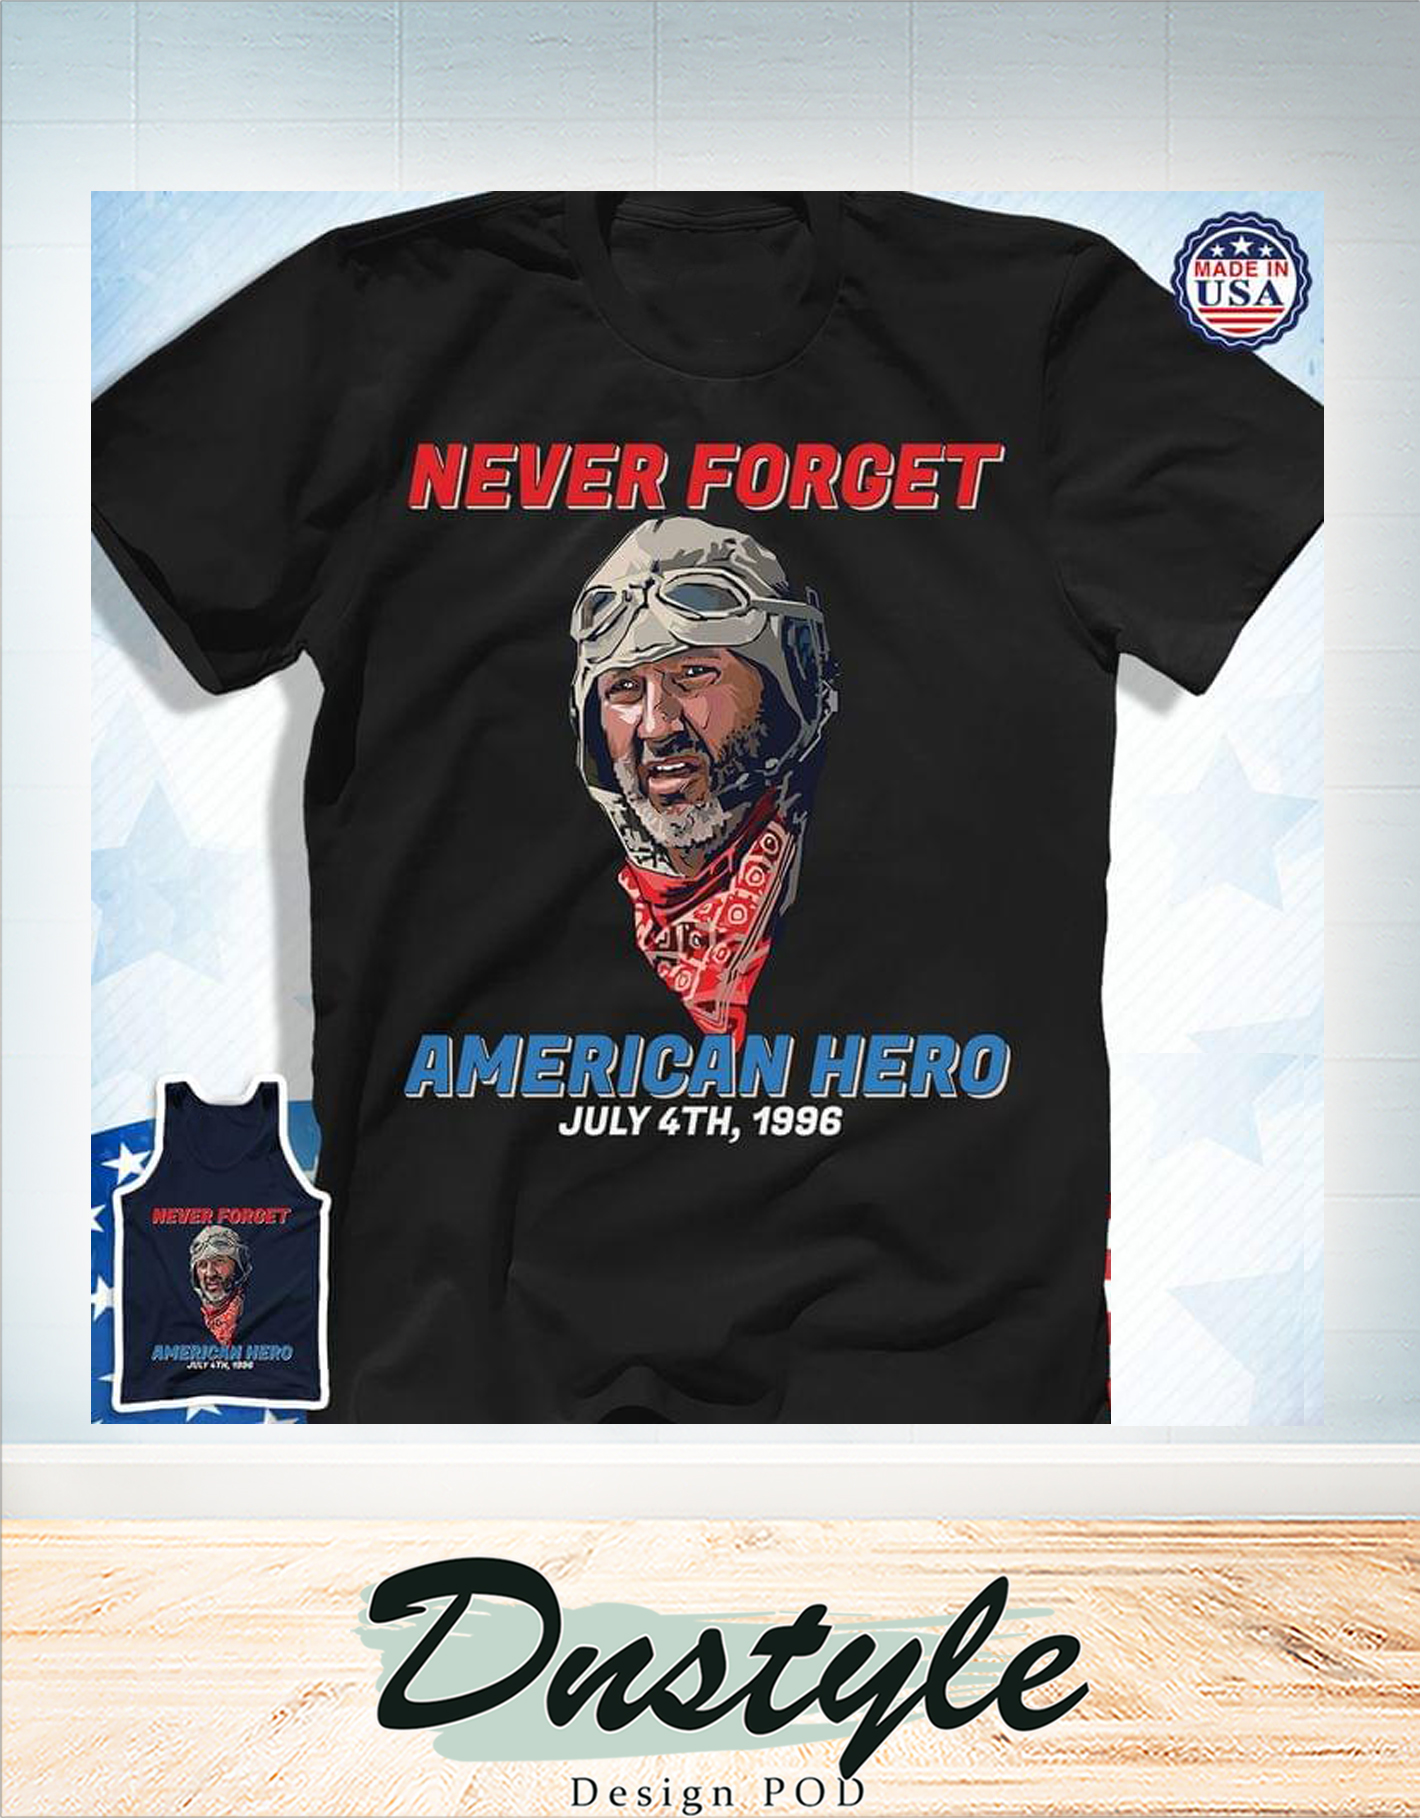 Never forget american hero july 4th 1986 t-shirt